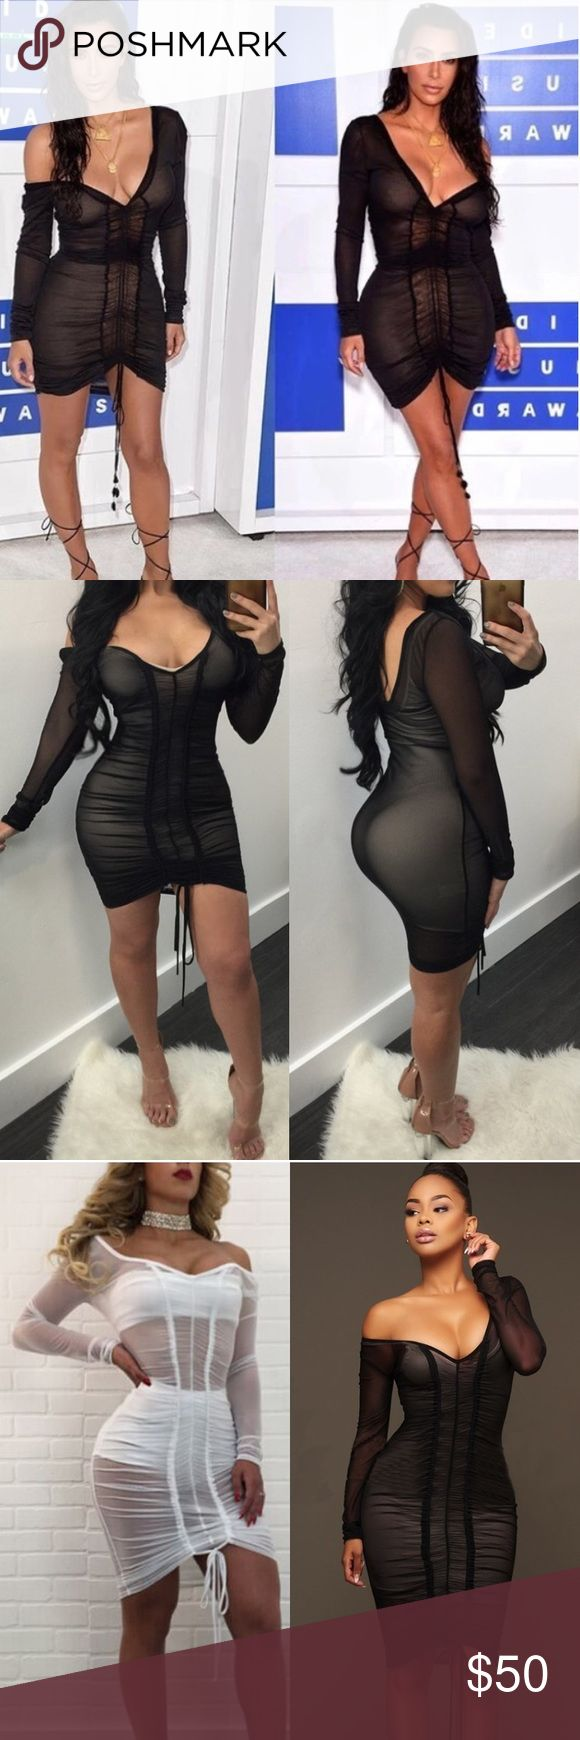 See Through Black Dress 🌶 Long Sleeve Bodycon See Through Evening Party Dress  * 100% Brand New and High Quality! * Color: Black * Material:95%polyamide 5%spandex * Not including the inside vest and shorts , this is see-through  * Kim Kardashian's Latest See Through Dress * Size: Medium (true to size) Dresses